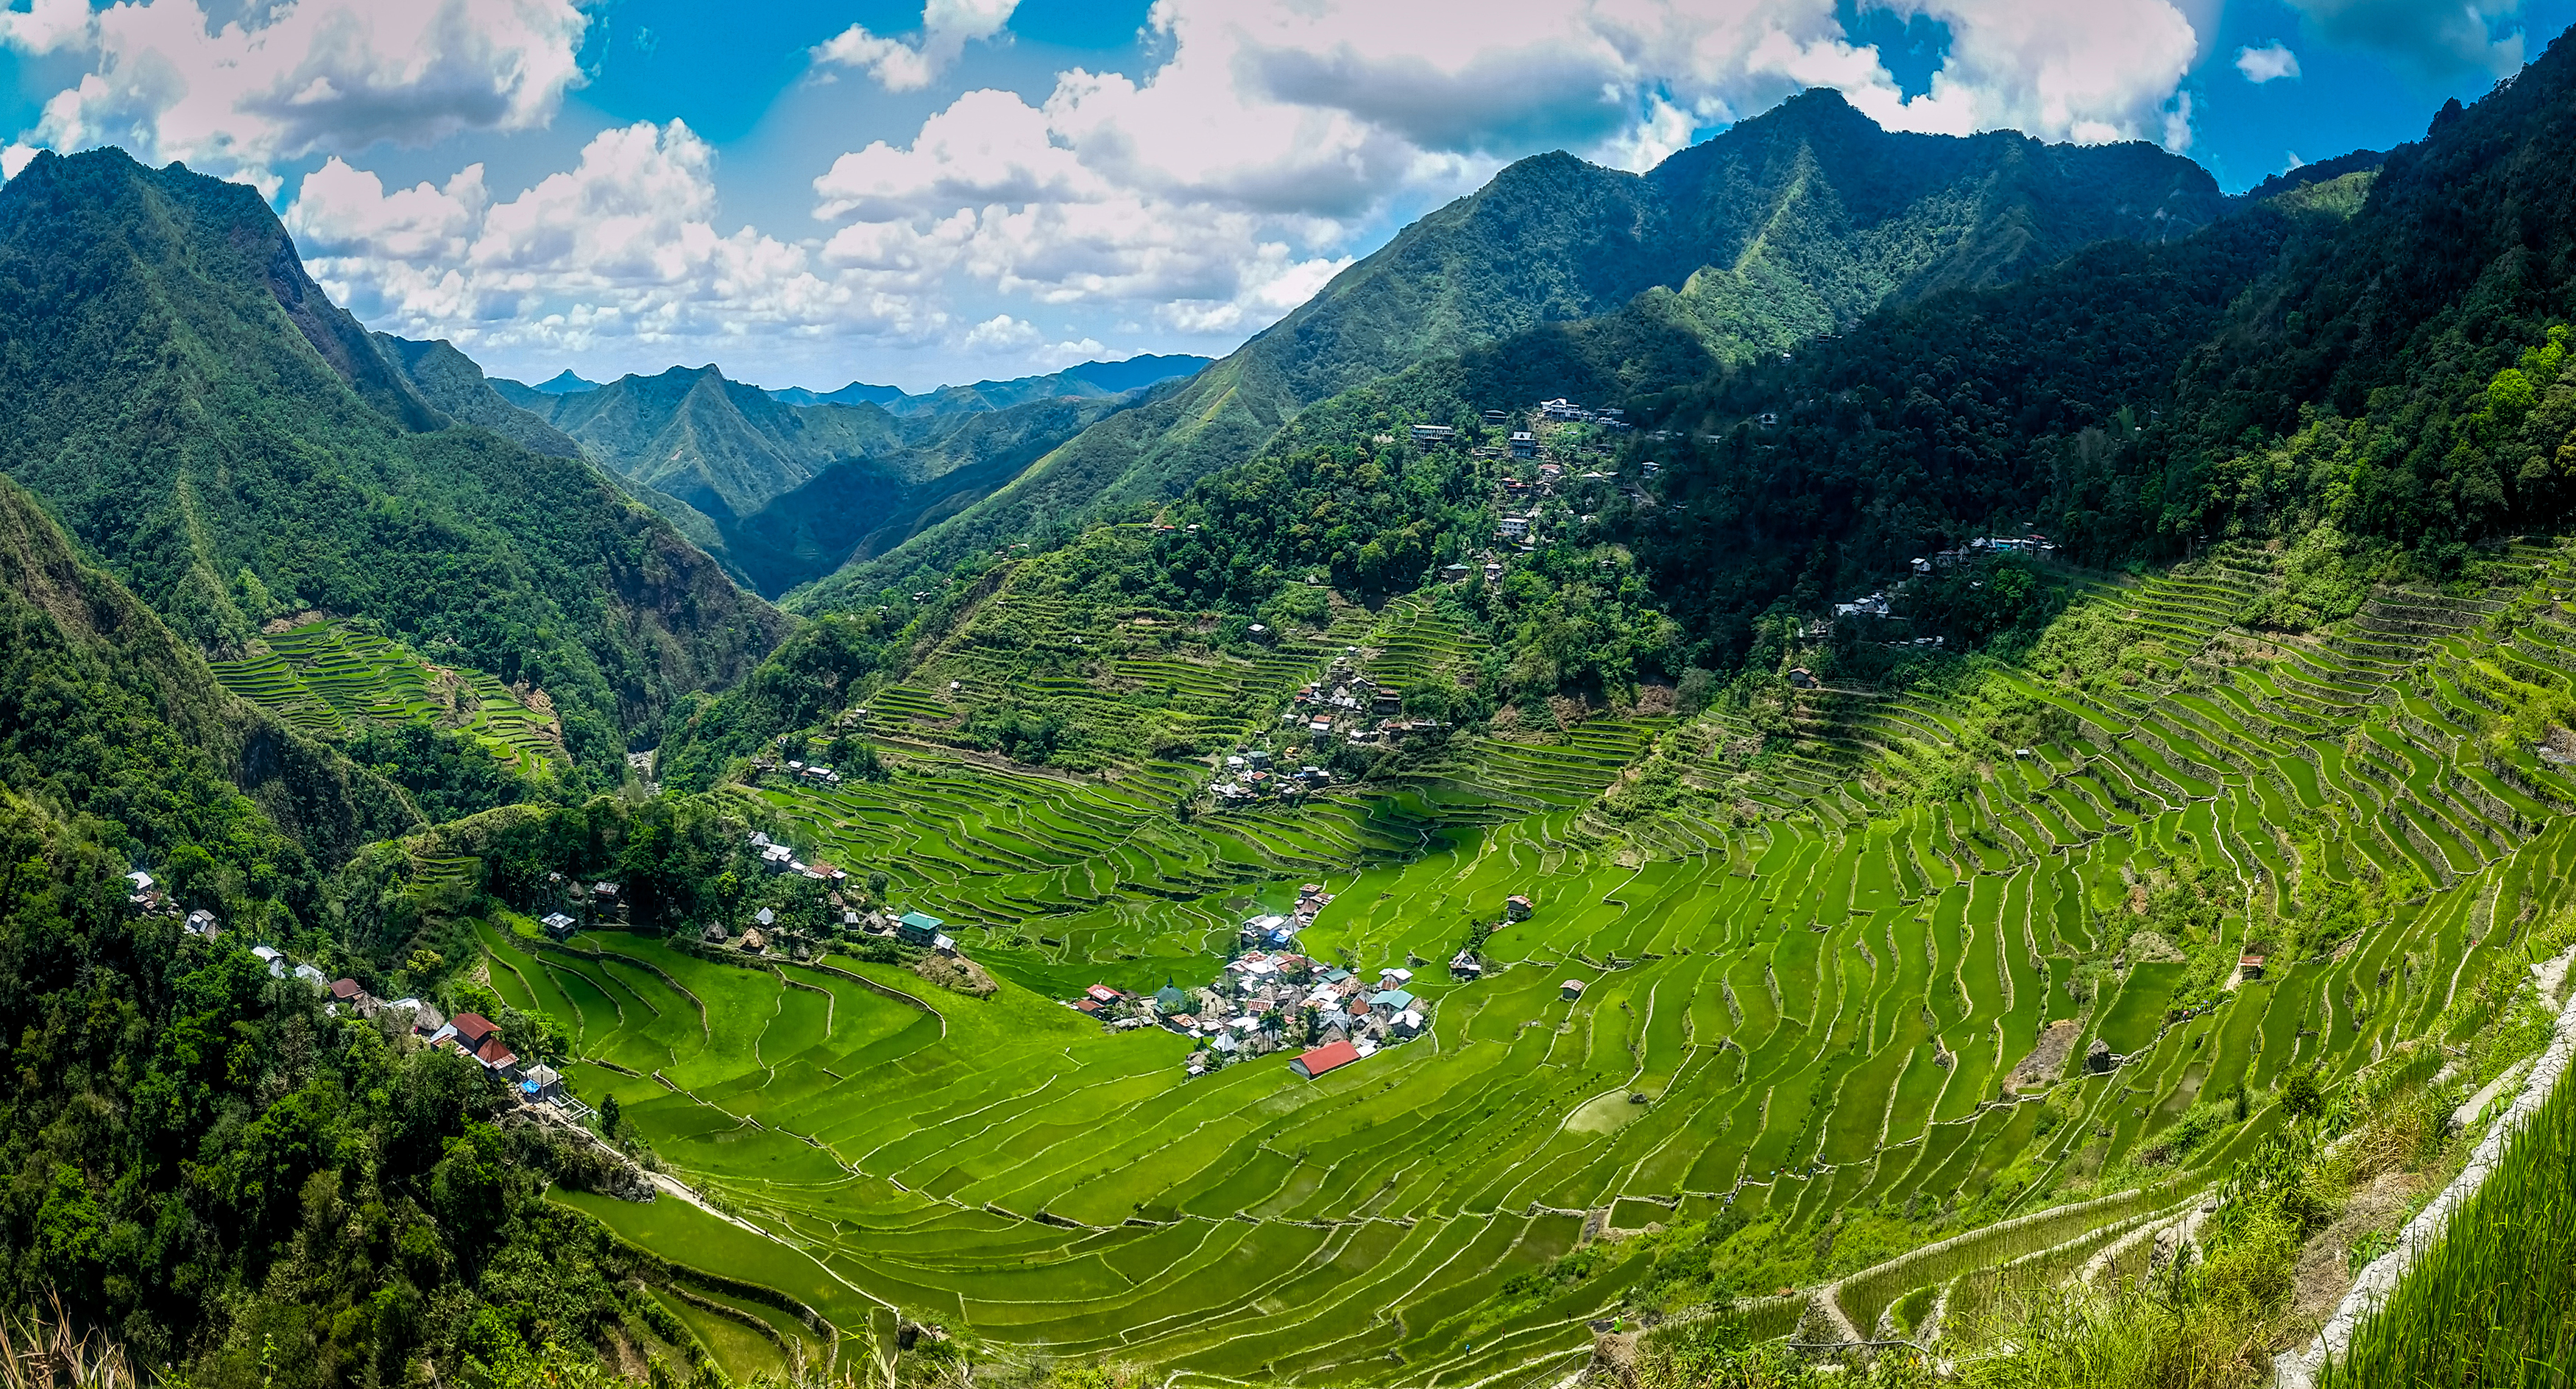 Scenic view of Batad Rice Terraces in Banaue